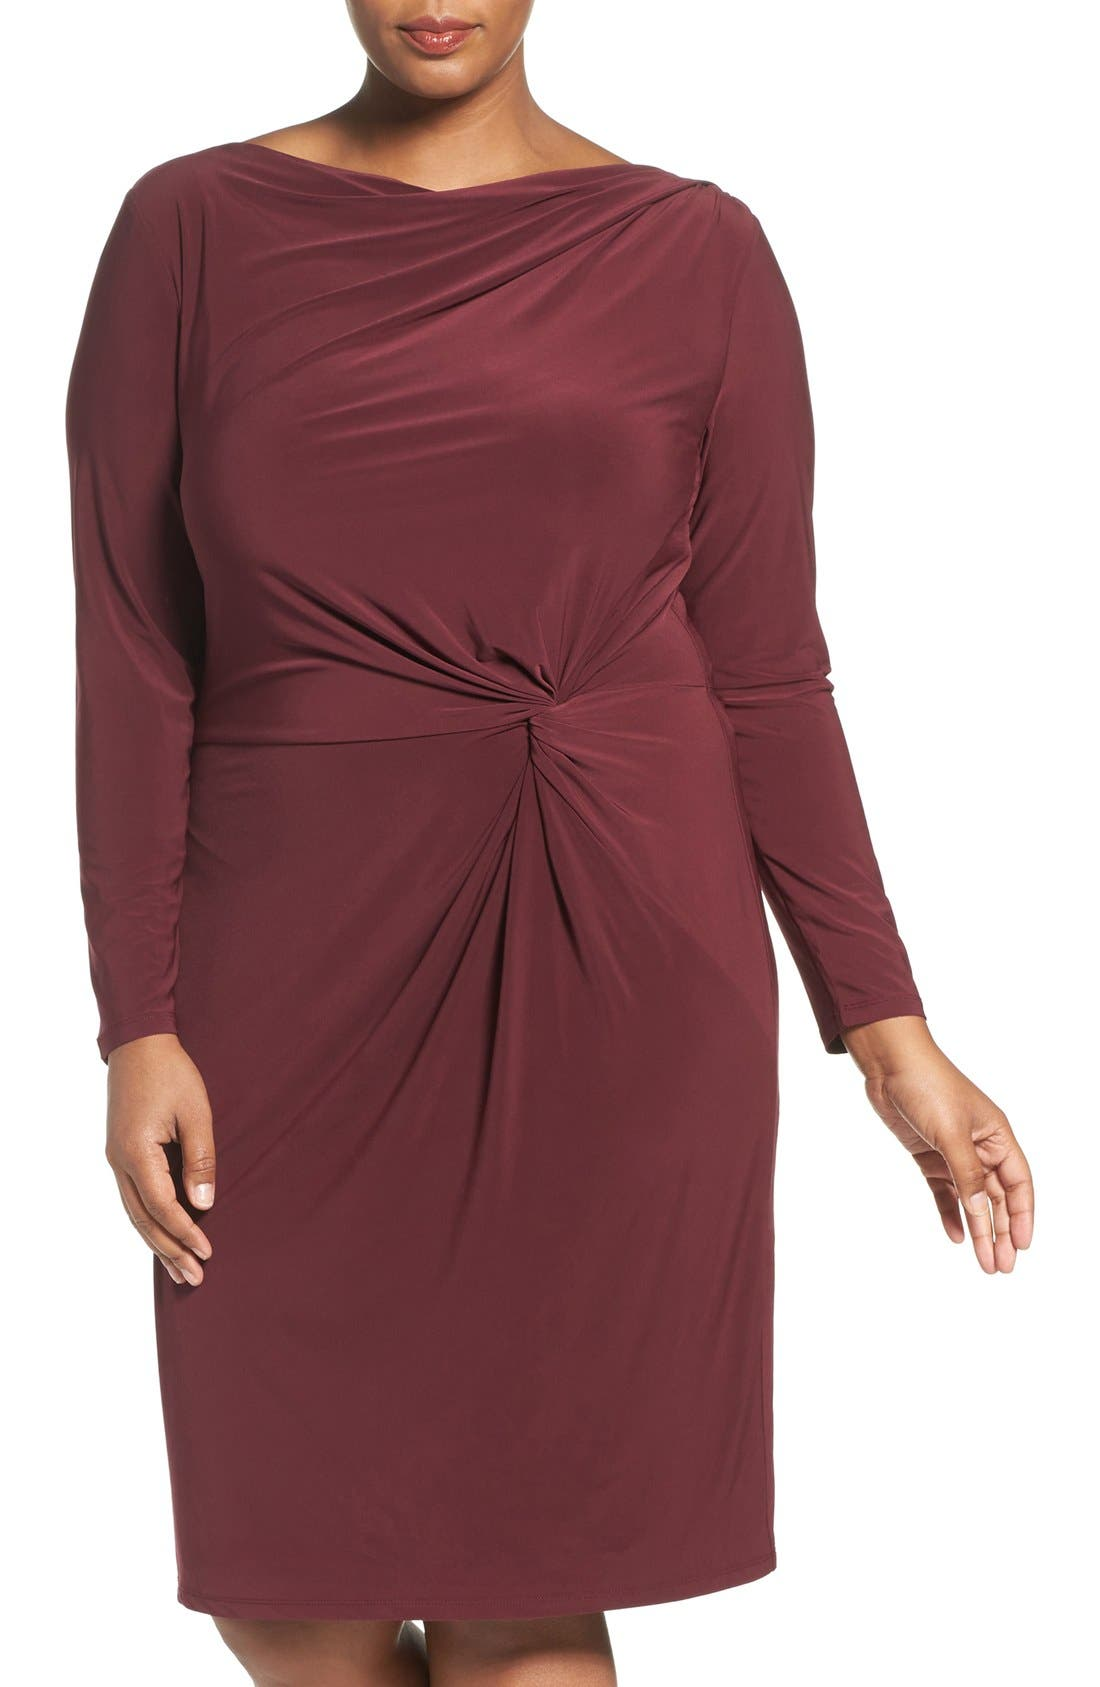 Adrianna Papell Knot Front Drape Jersey Dress (Plus Size)